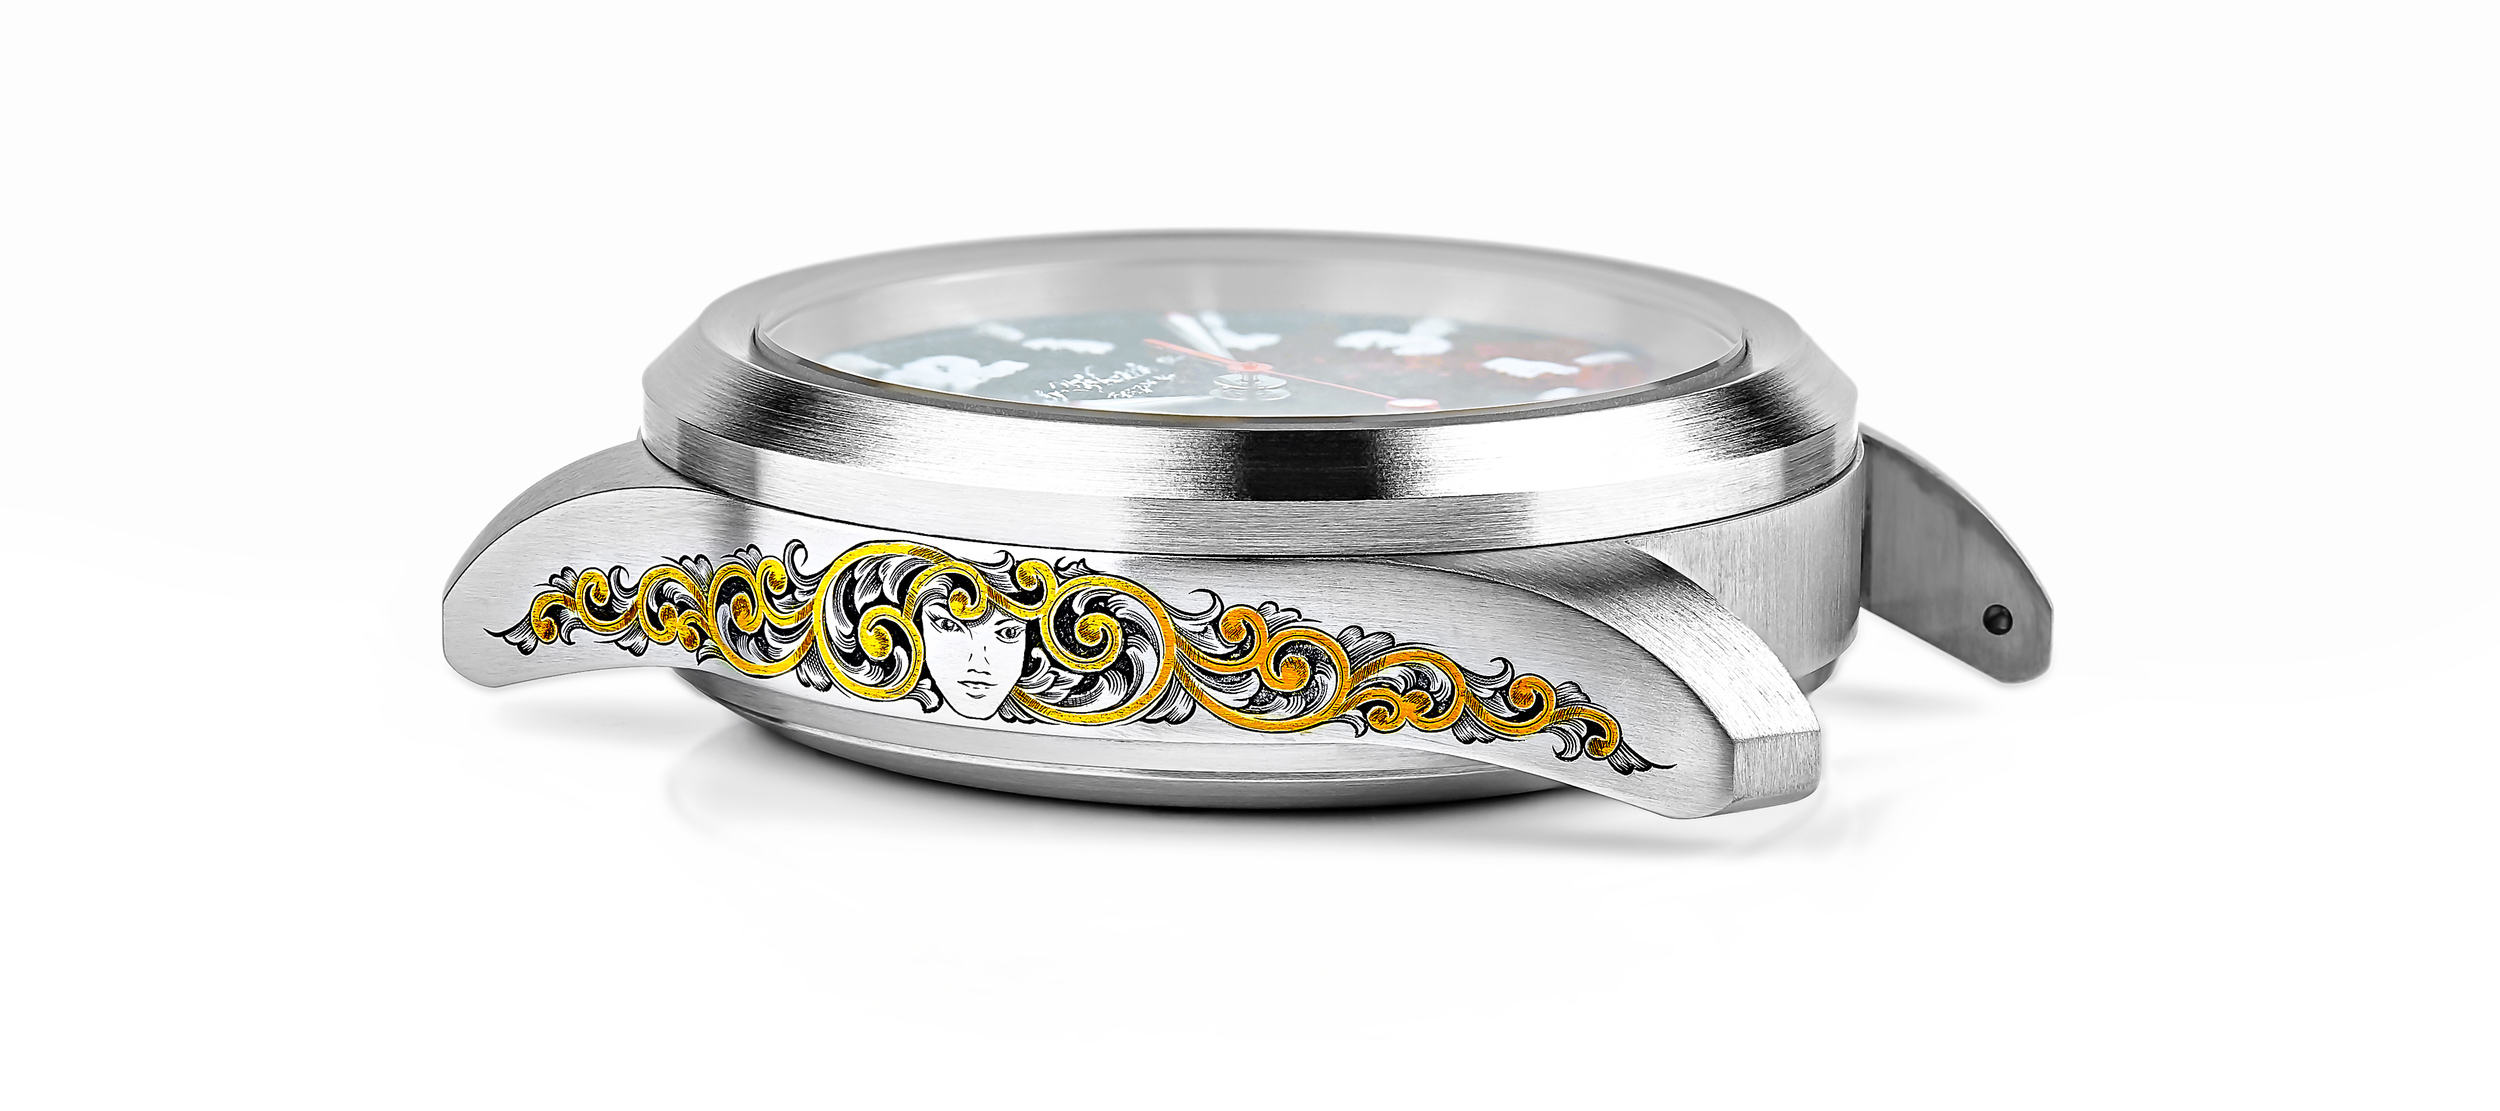 Sif Nart 40mm Collection